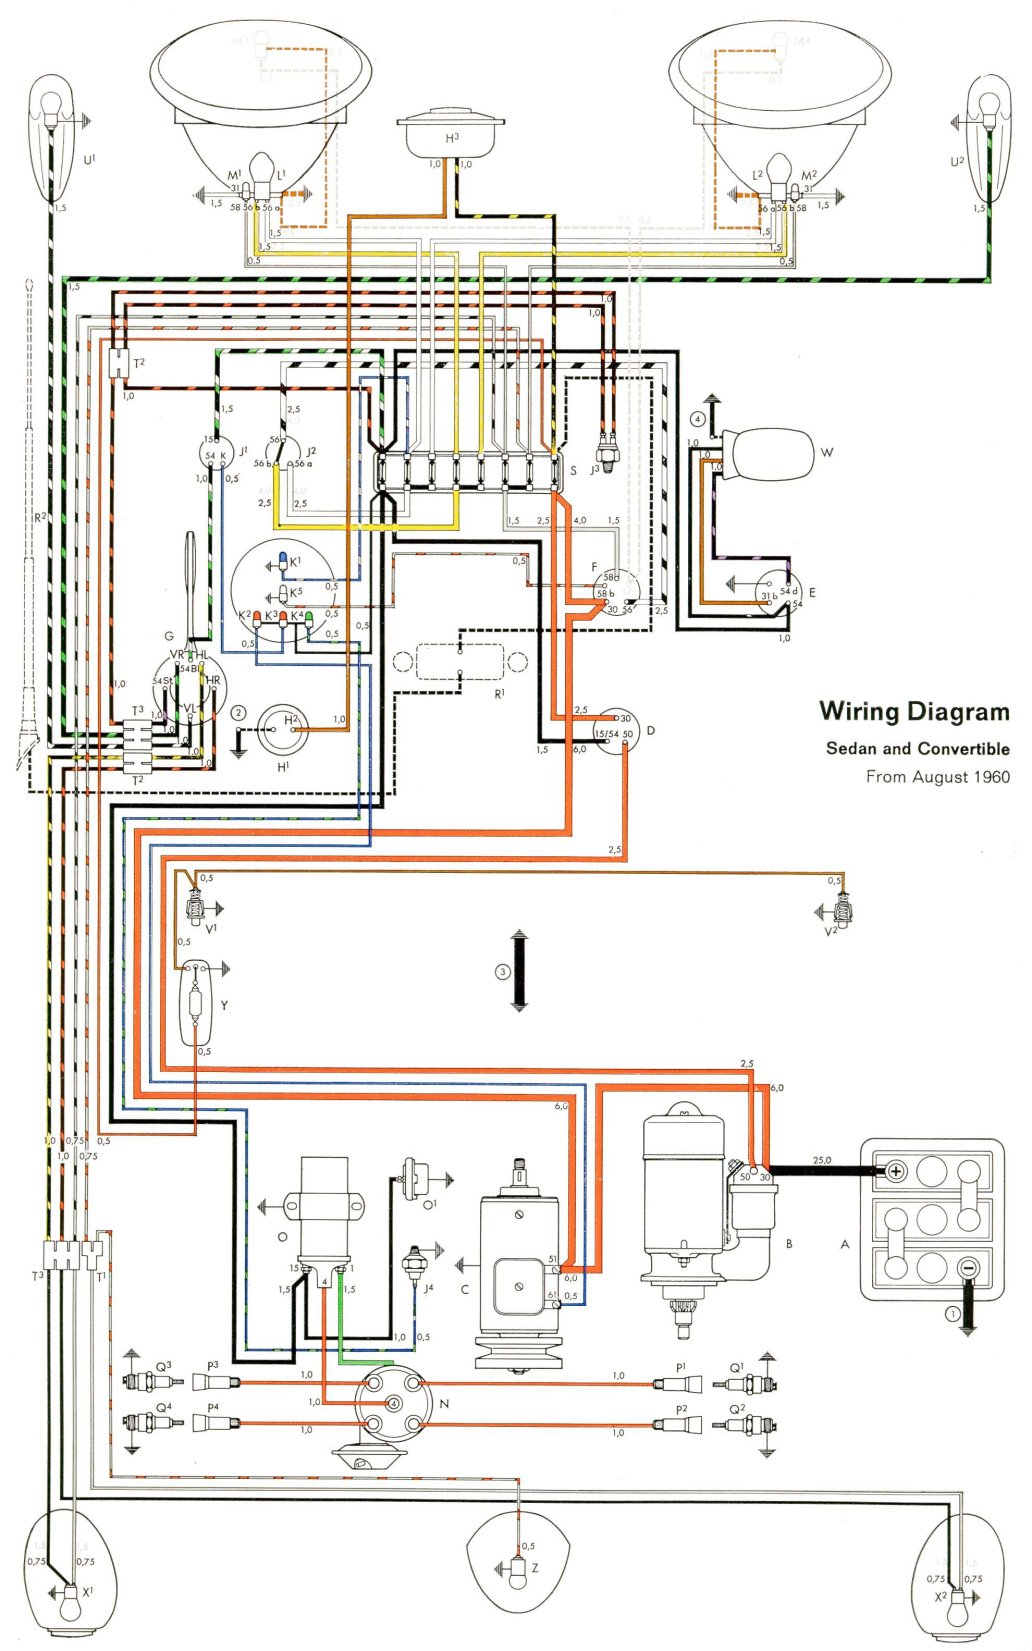 bug_61 1961 beetle wiring diagram thegoldenbug com 1972 beetle wiring diagram at bayanpartner.co